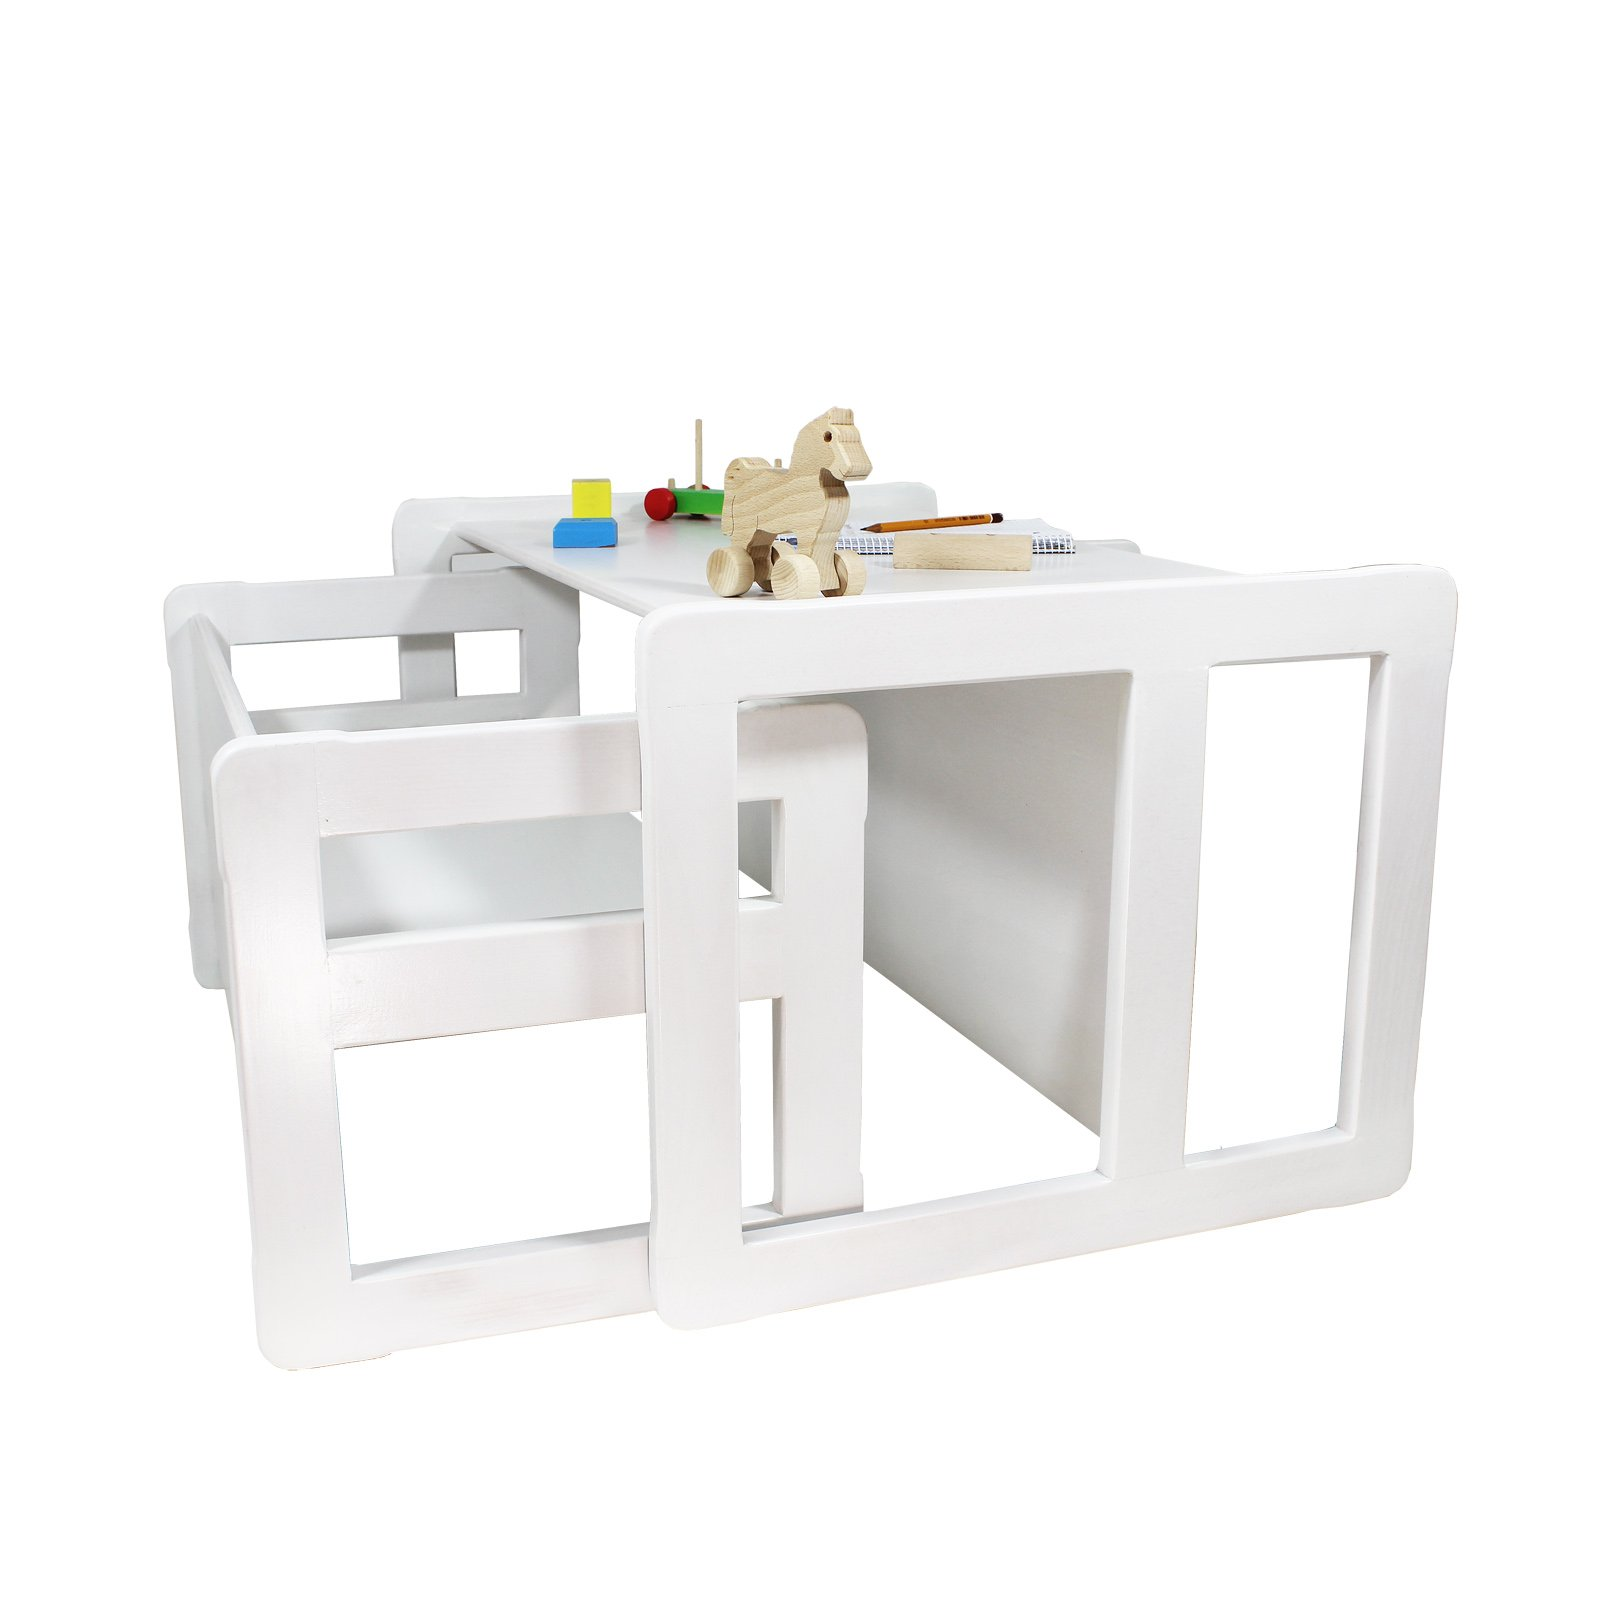 3 in 1 Childrens Multifunctional Furniture Set of 2, One Small Bench or Table and One Large Bench or Table Beech Wood, White Stained by Obique Ltd (Image #1)